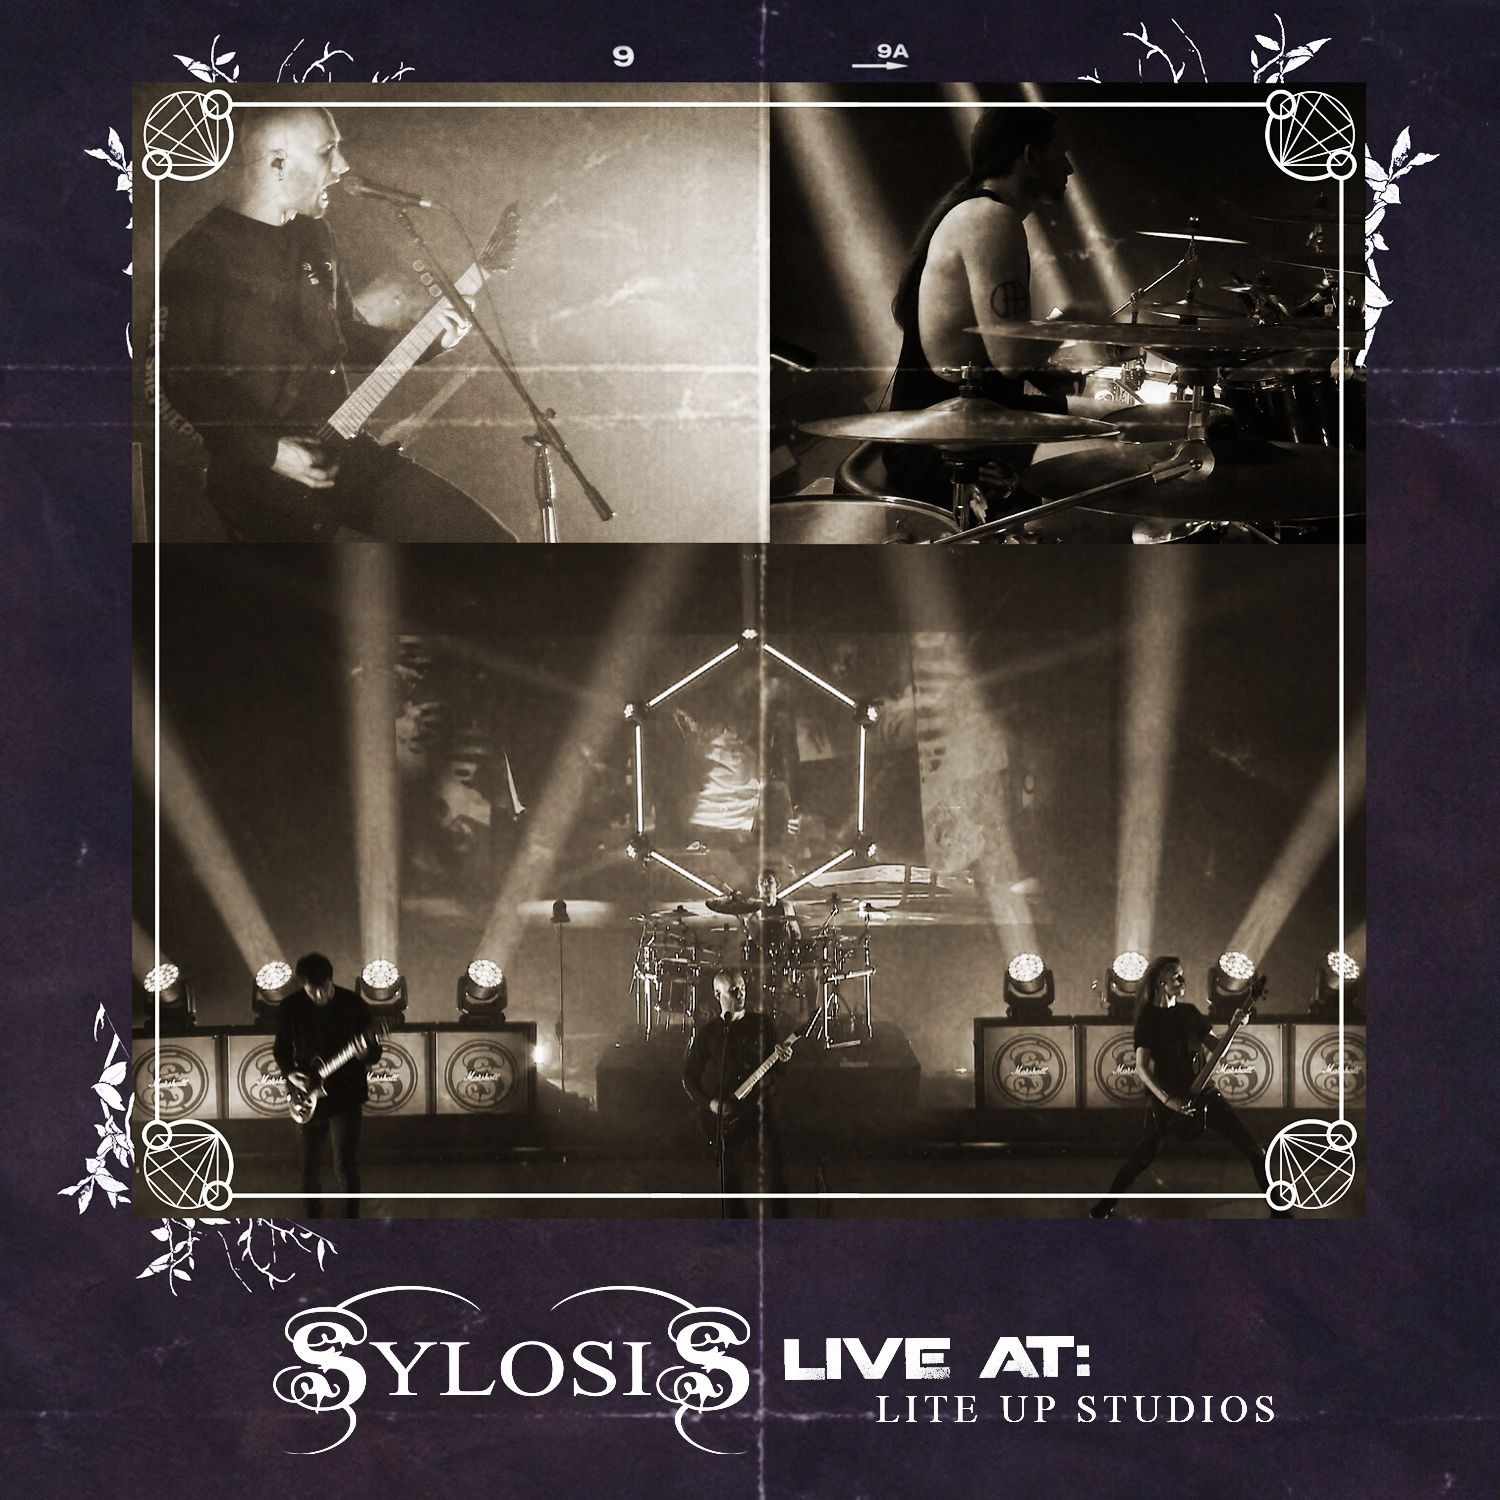 SYLOSIS - LIVE AT: LITE UP STUDIOS POSTER